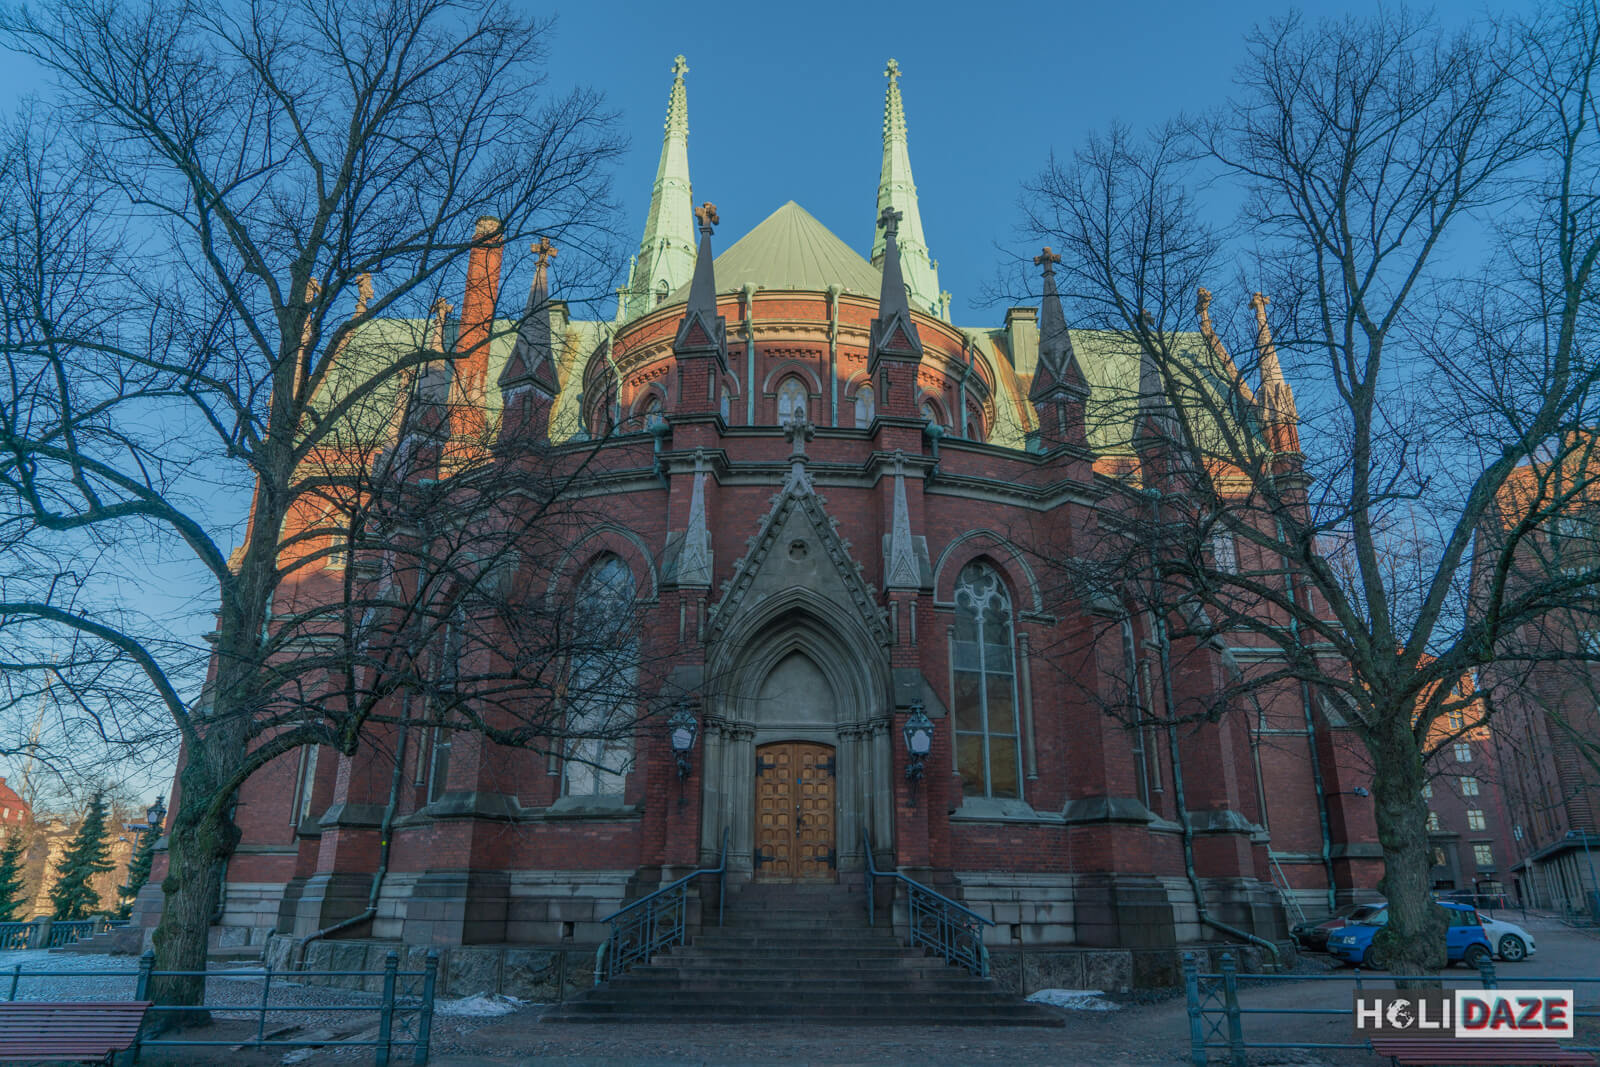 St. John's Church in Helsinki, Finland